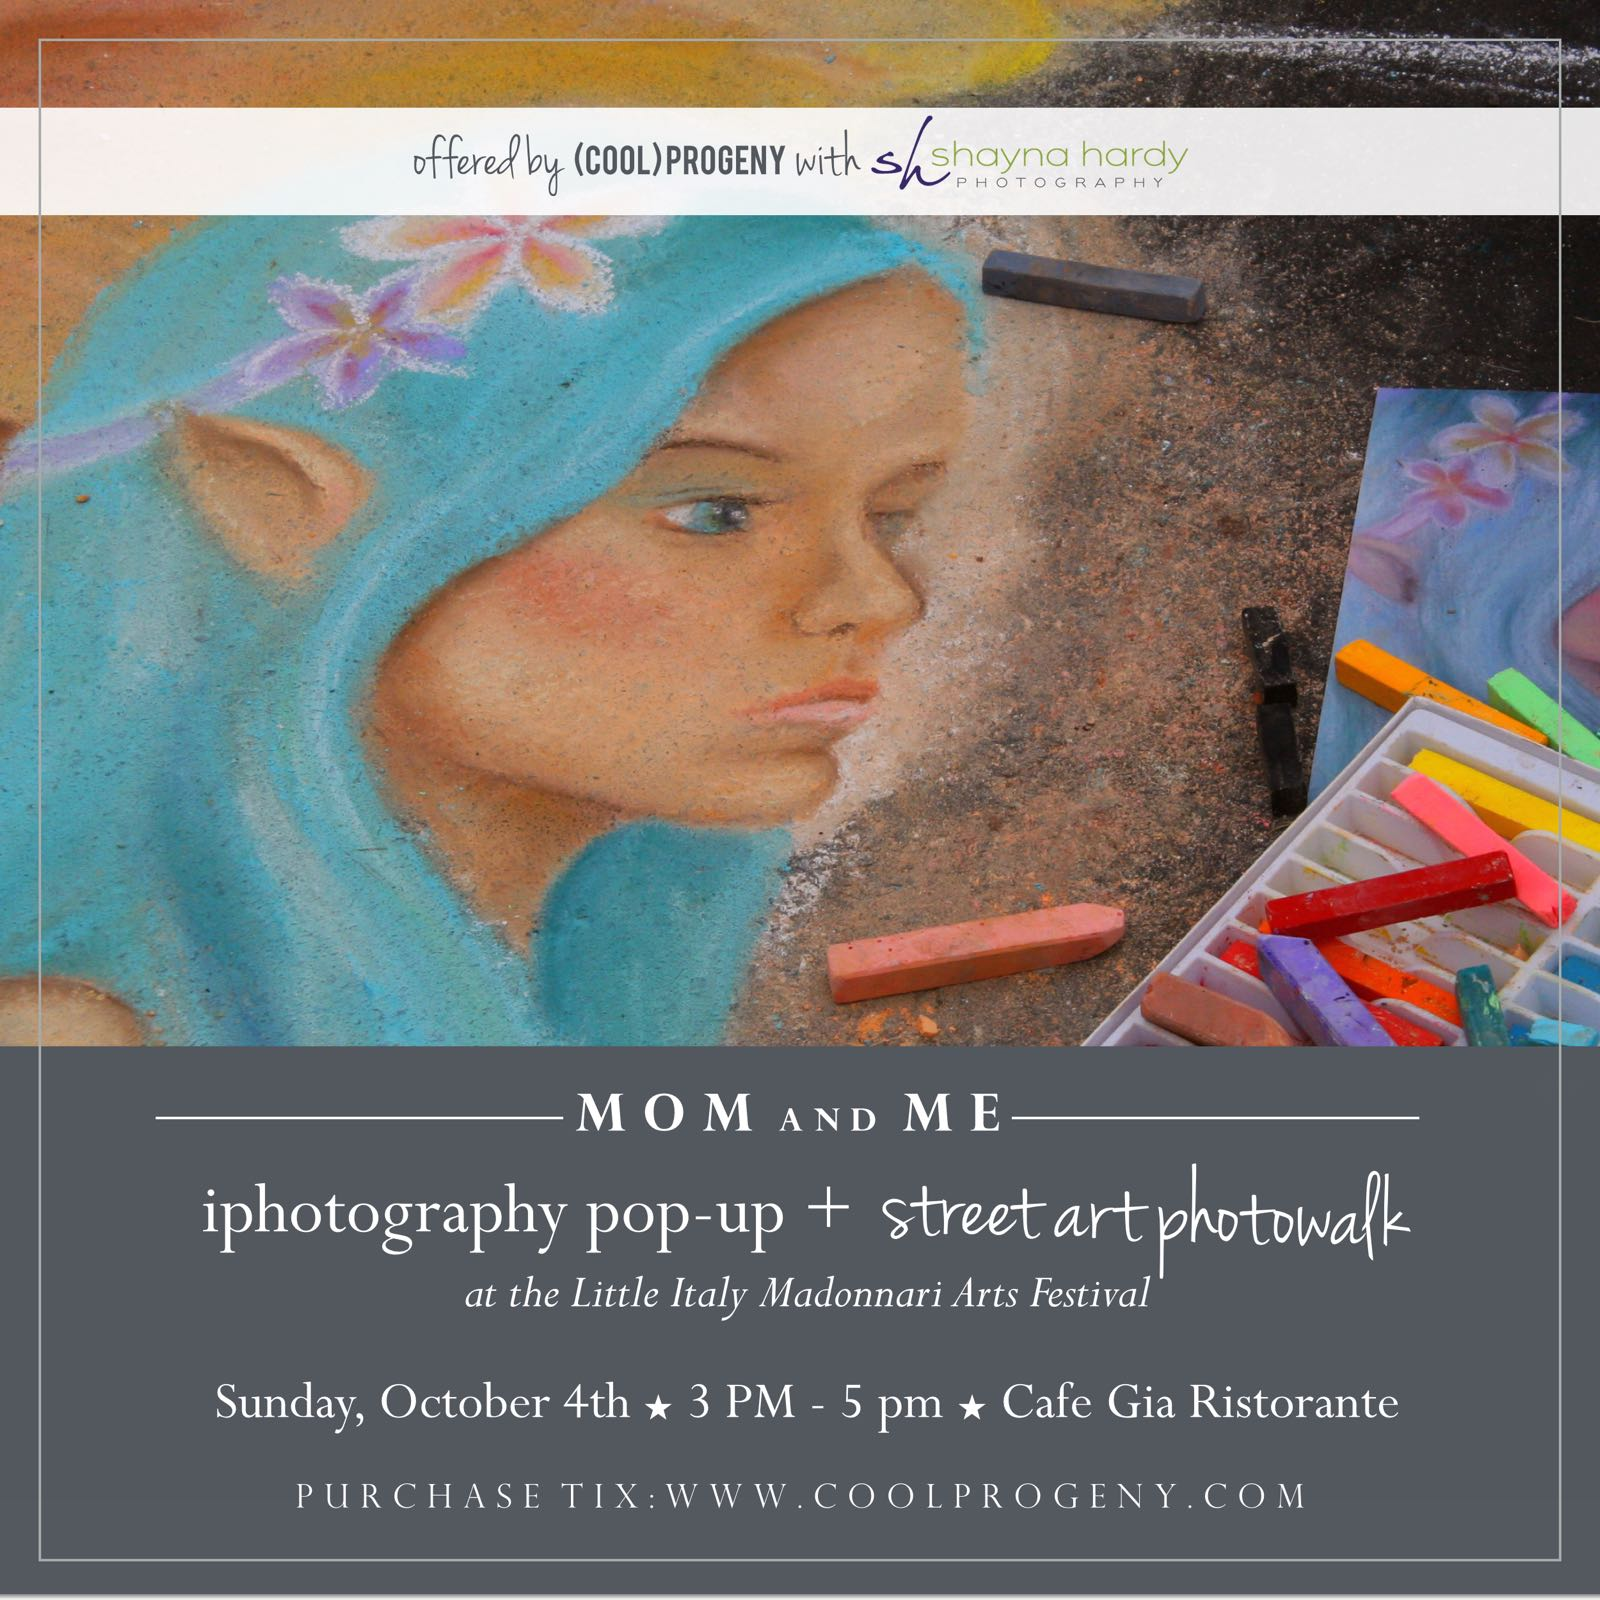 Mom and Me: iPhotography Class and Photowalk - (cool) progeny